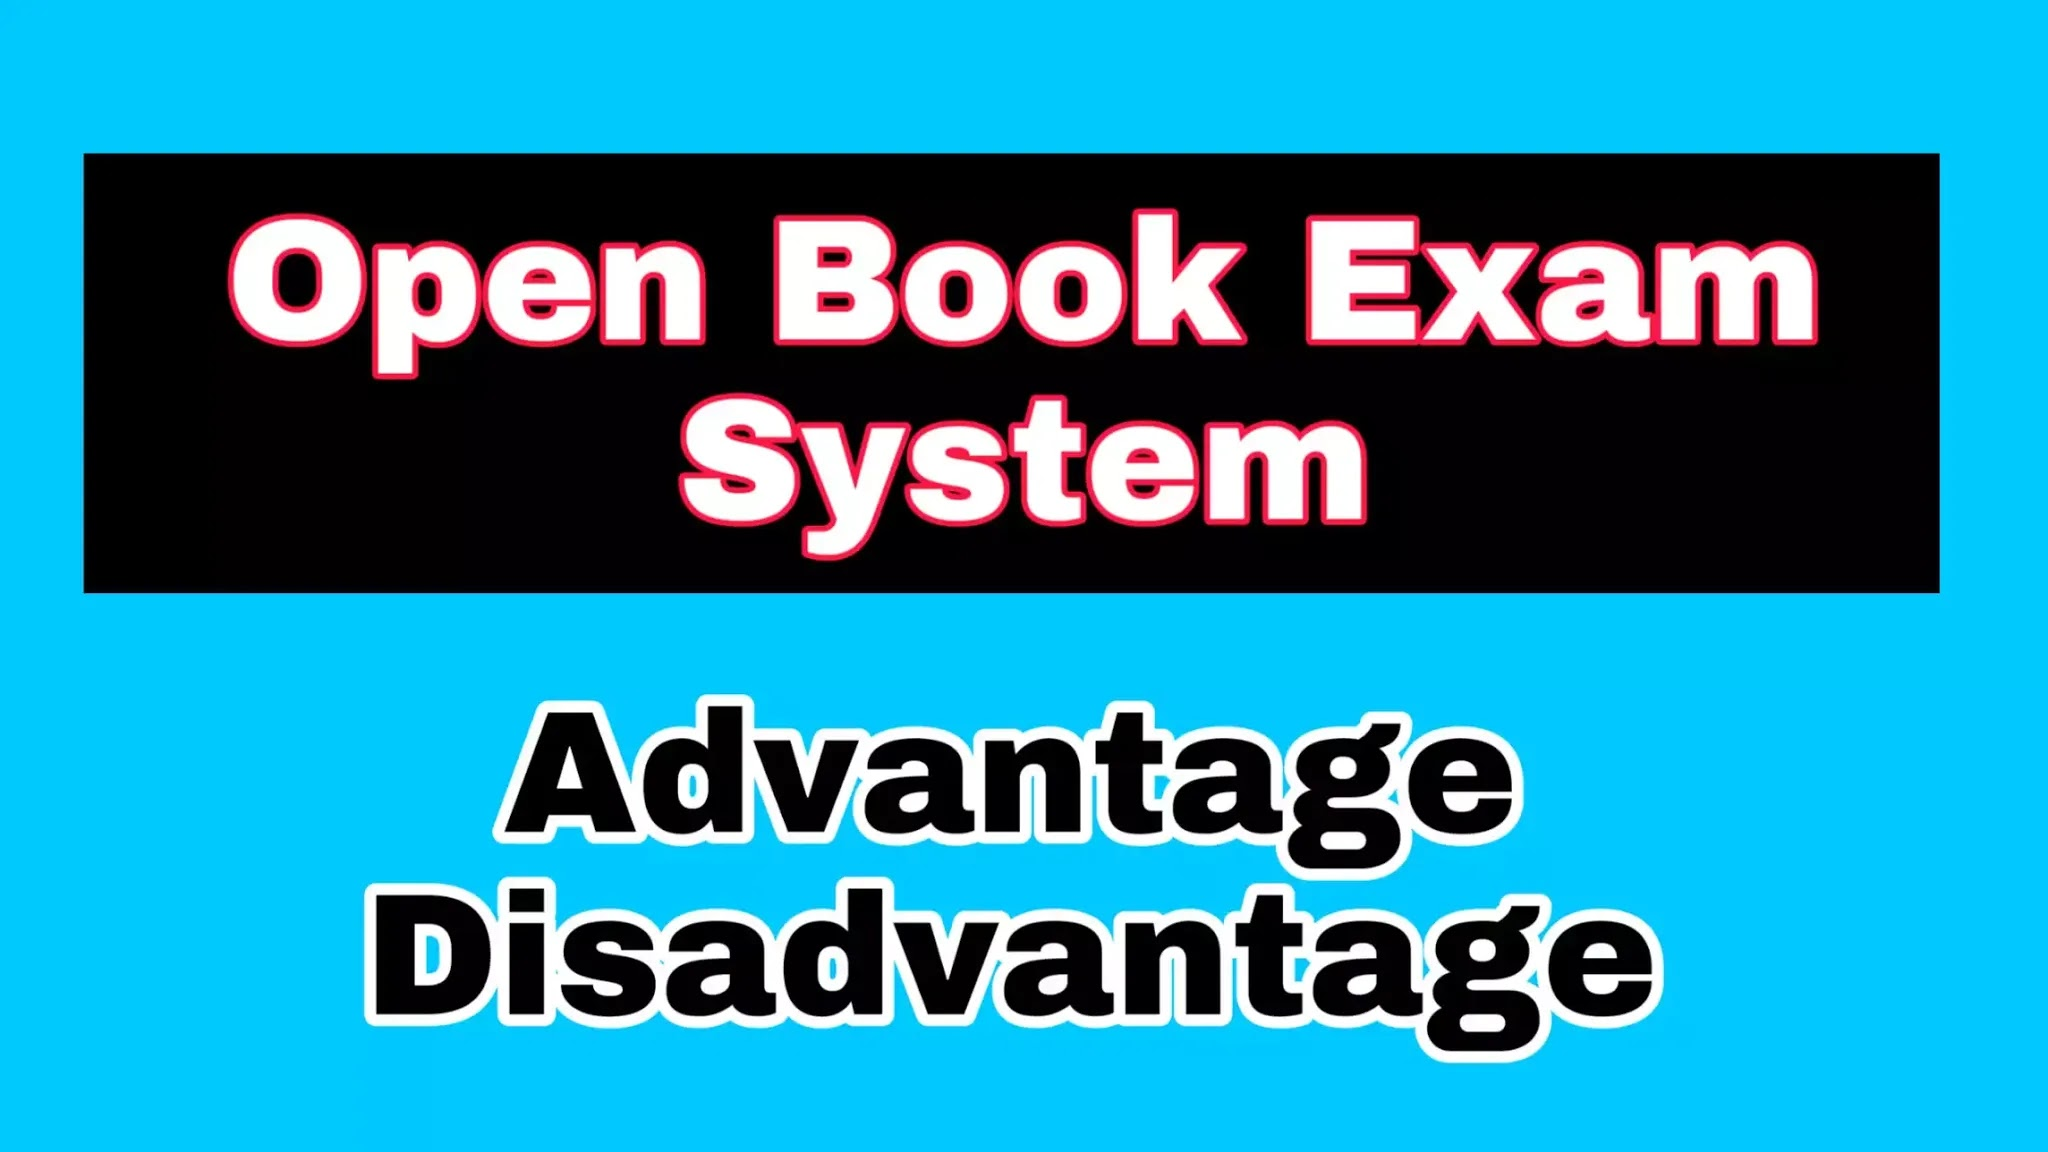 What is the Open Book Exam System, what are its benefits and side effects?